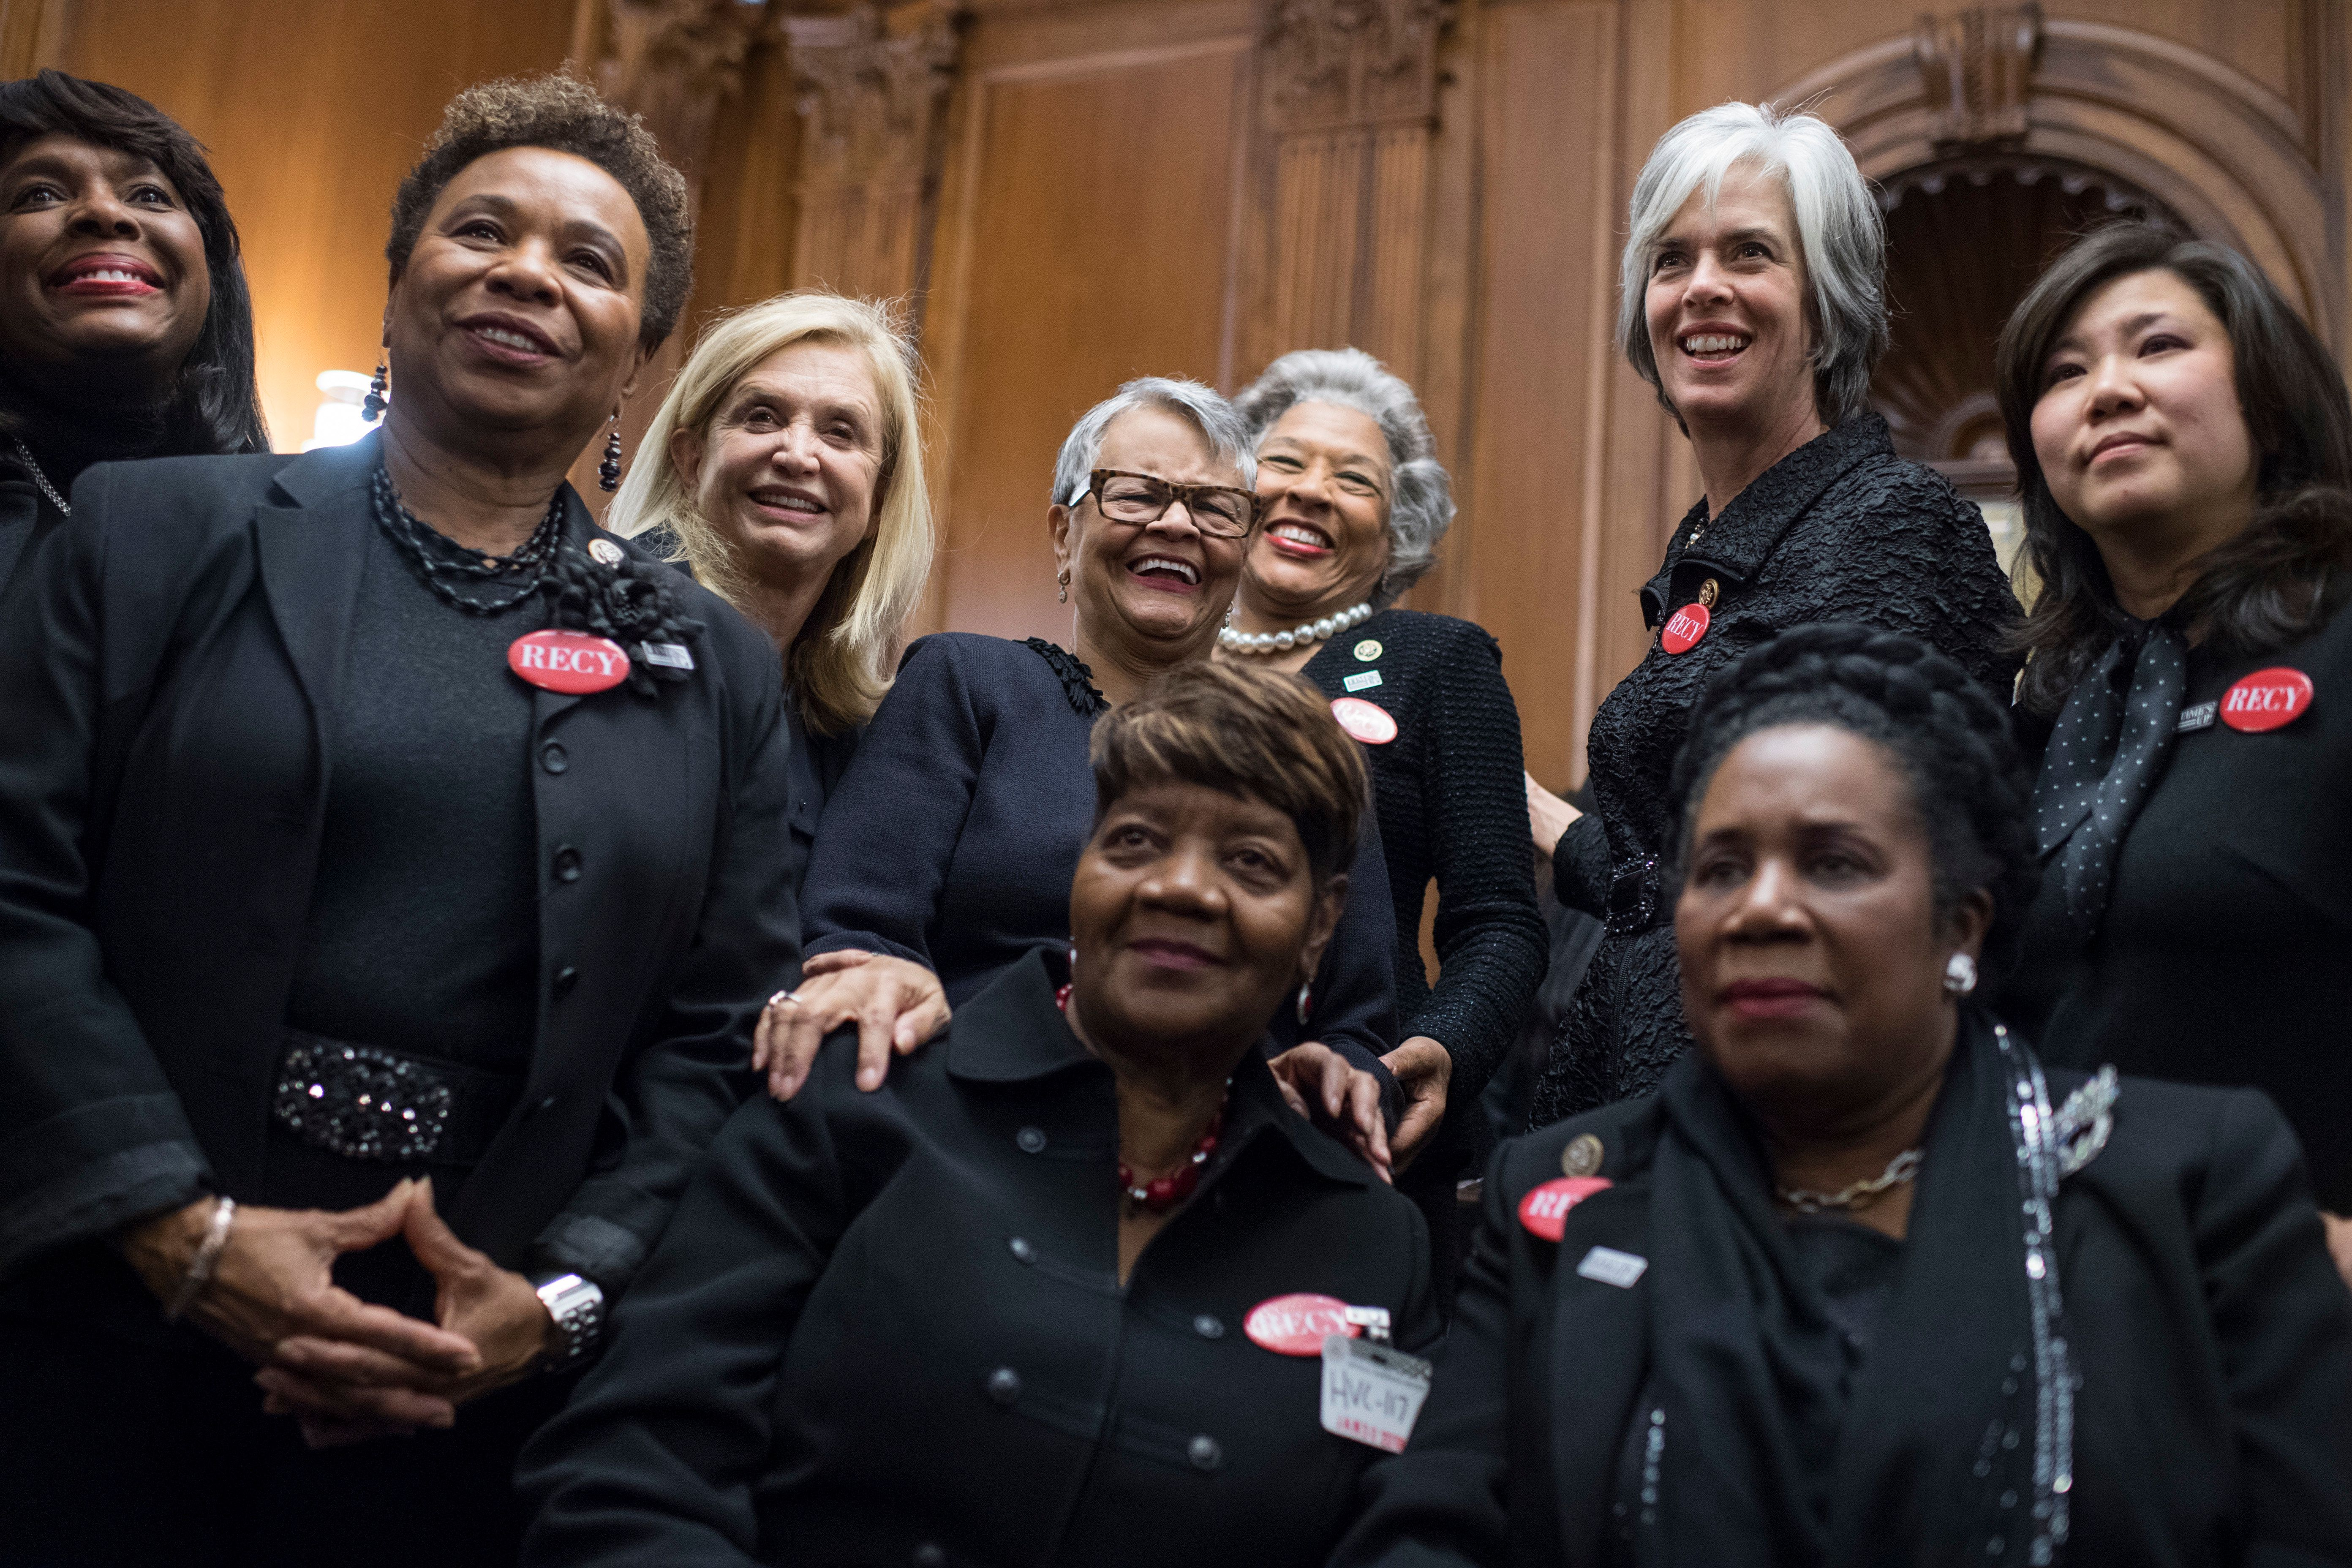 UNITED STATES - JANUARY 30: Rose Gunter, front and center, the niece of sexual assault survivor Recy Taylor, wears black during a photo op in the Capitol's Rayburn Room to show solidarity with men and women who are speaking out against sexual harassment and discrimination on January 30, 2018. Also appearing are, from left, Reps. Terri Sewell, D-Ala., Barbara Lee, D-Calif., Carolyn Maloney, D-N.Y., Bonnie Watson Coleman, D-N.J., Joyce Beatty, D-Ohio, Katherine Clark, D-Mass., Sheila Jackson Lee, D-Texas, and Grace Meng, D-N.Y. (Photo By Tom Williams/CQ Roll Call)